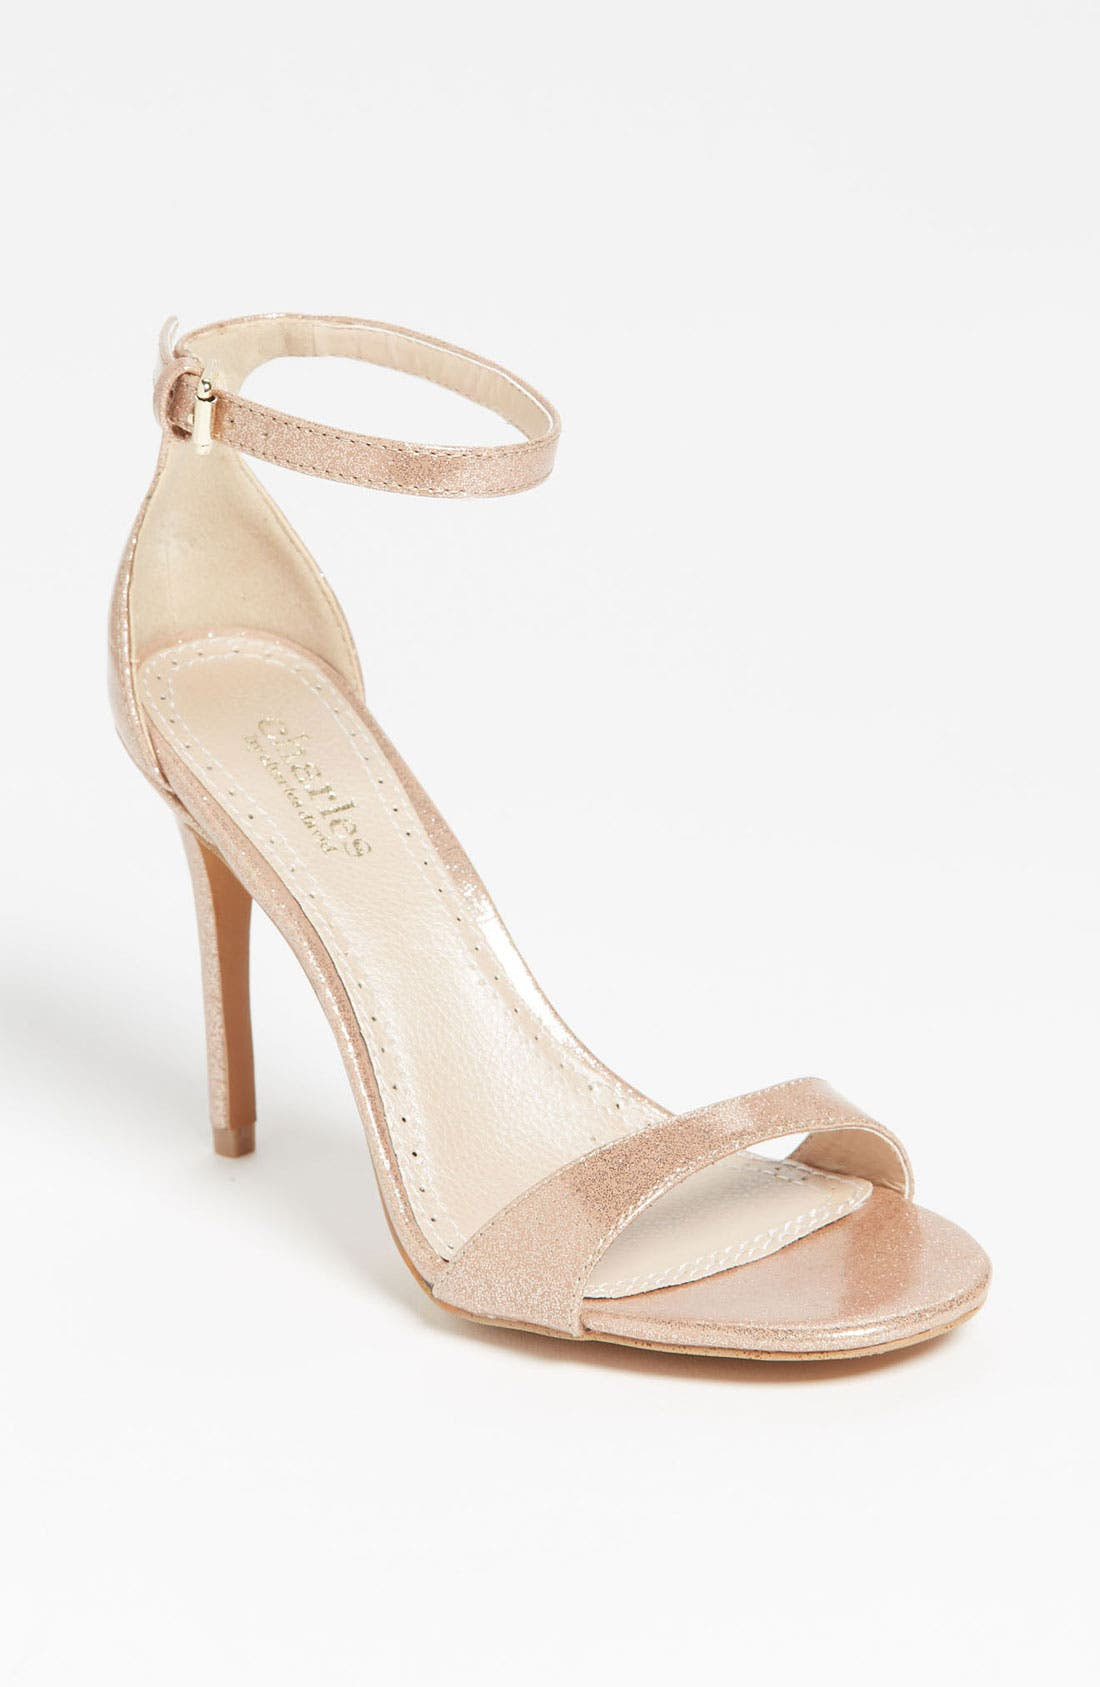 Alternate Image 1 Selected - Charles by Charles David 'Radial' Sandal